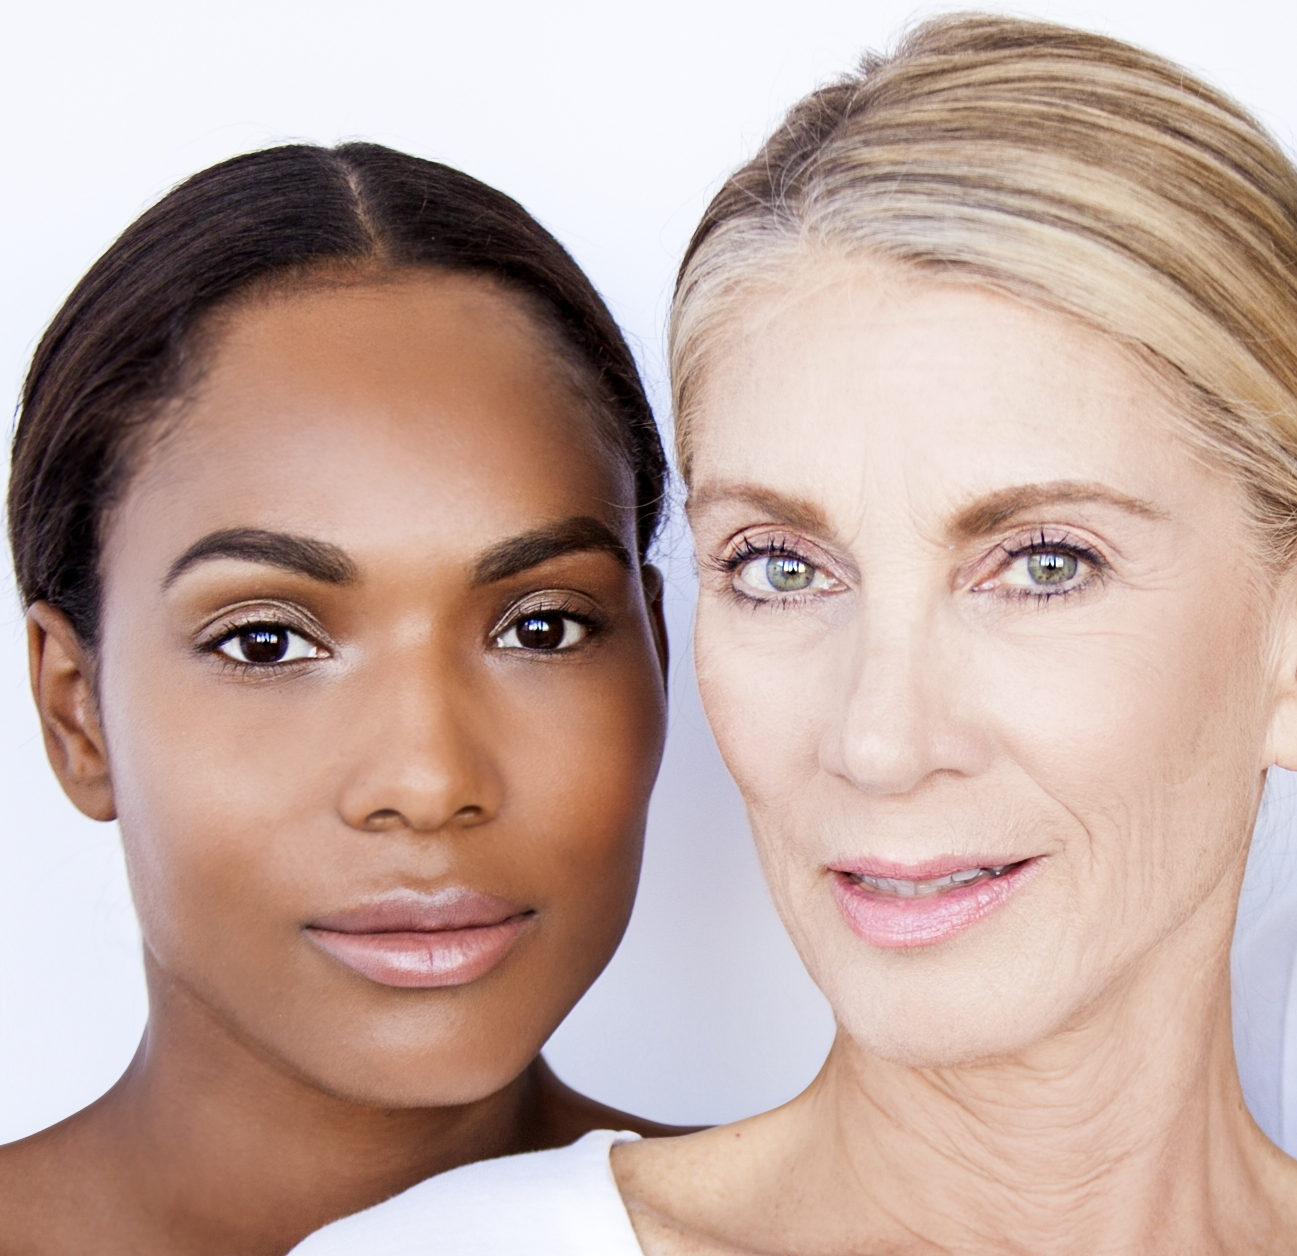 Our vision To be the number one probiotic and microbiome-friendly skincare company in the world - We want to create an inclusive community of like minded individuals empowered to make a difference in their lives and the lives of others.